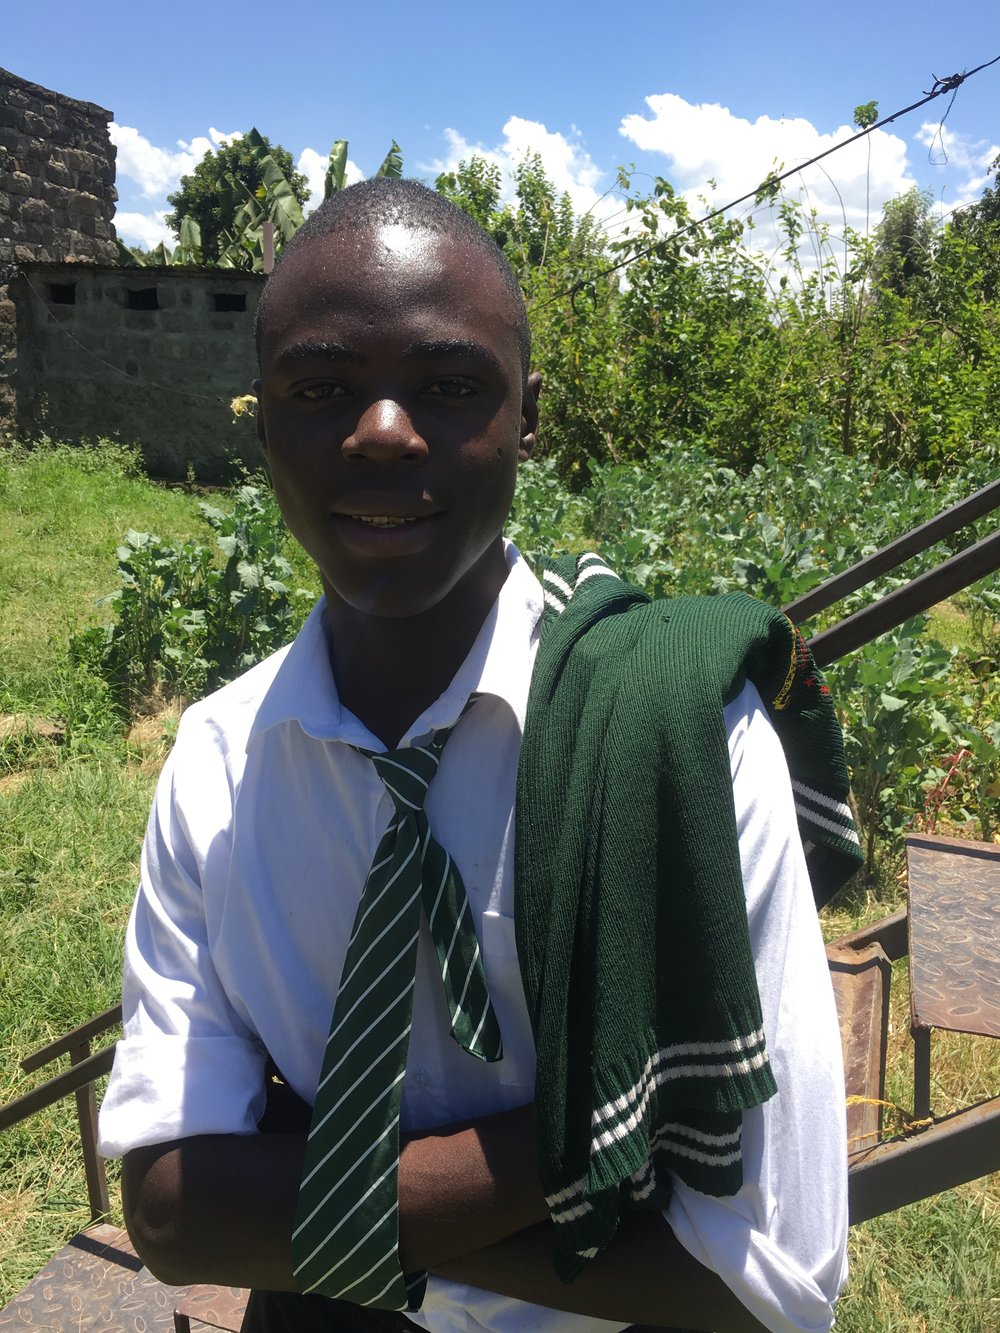 Victor hopre to study physics in college